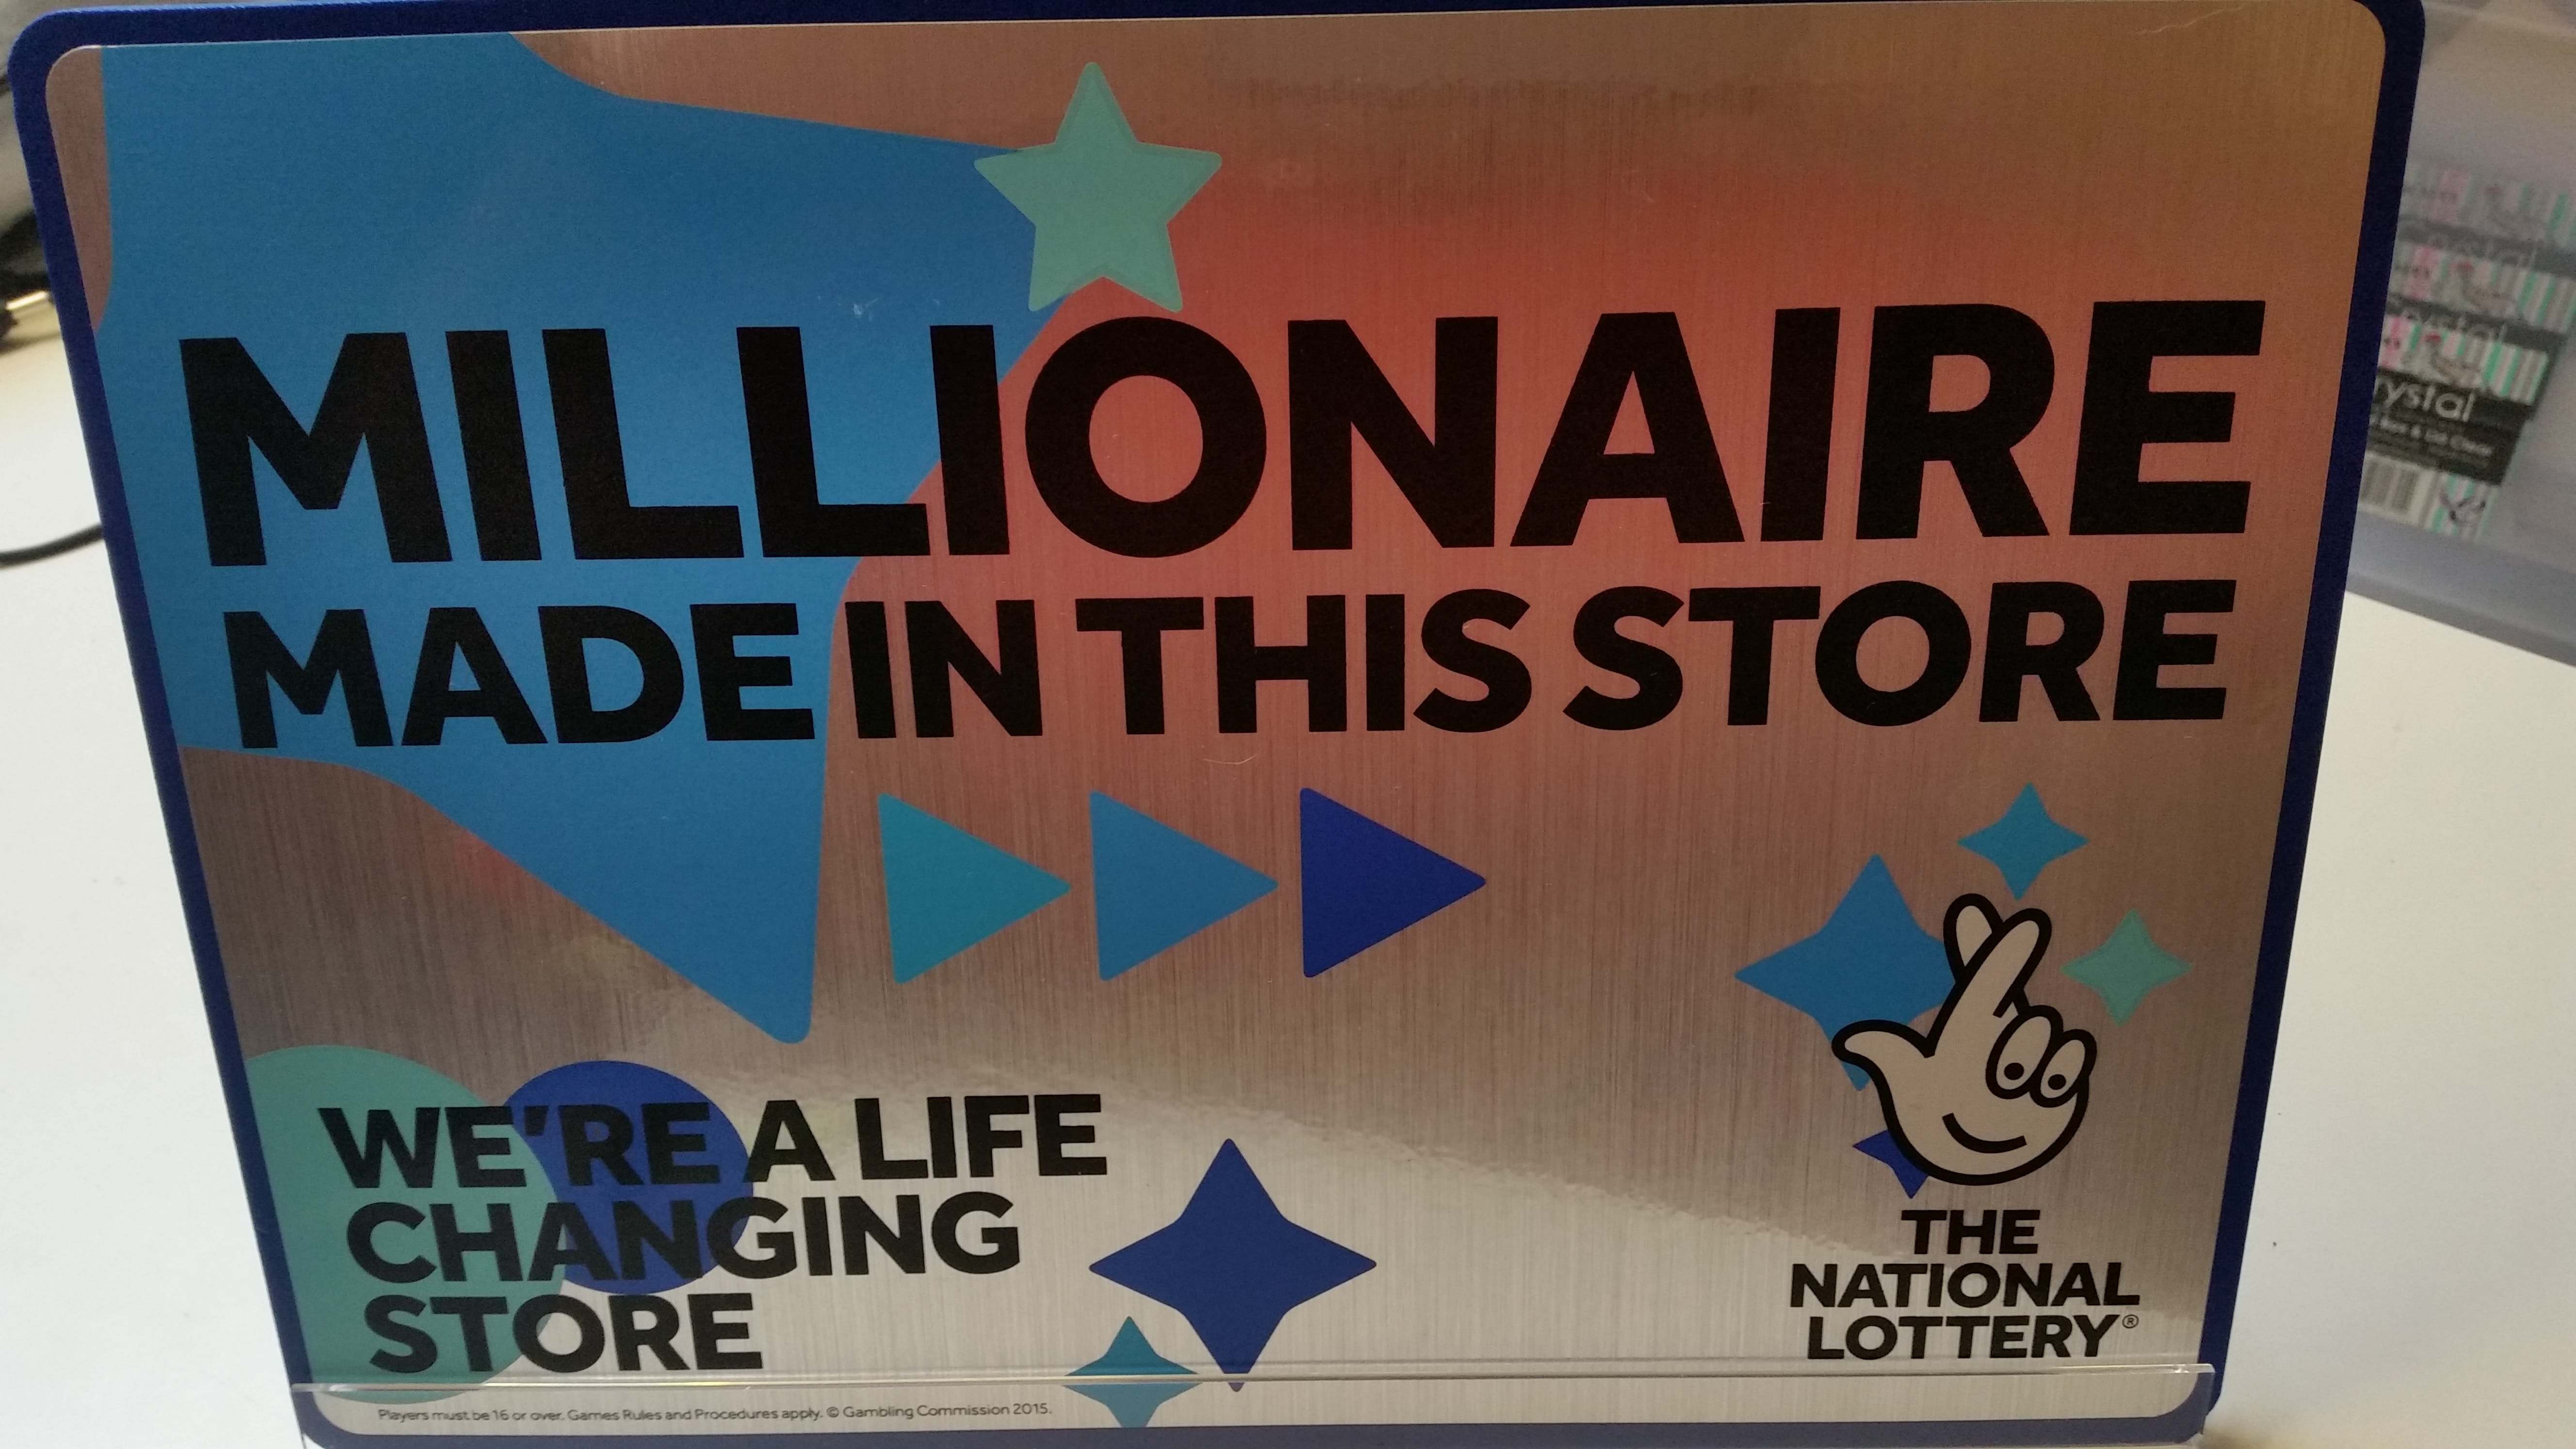 It's official!  Cabot Place West store has recently made someone a millionaire!